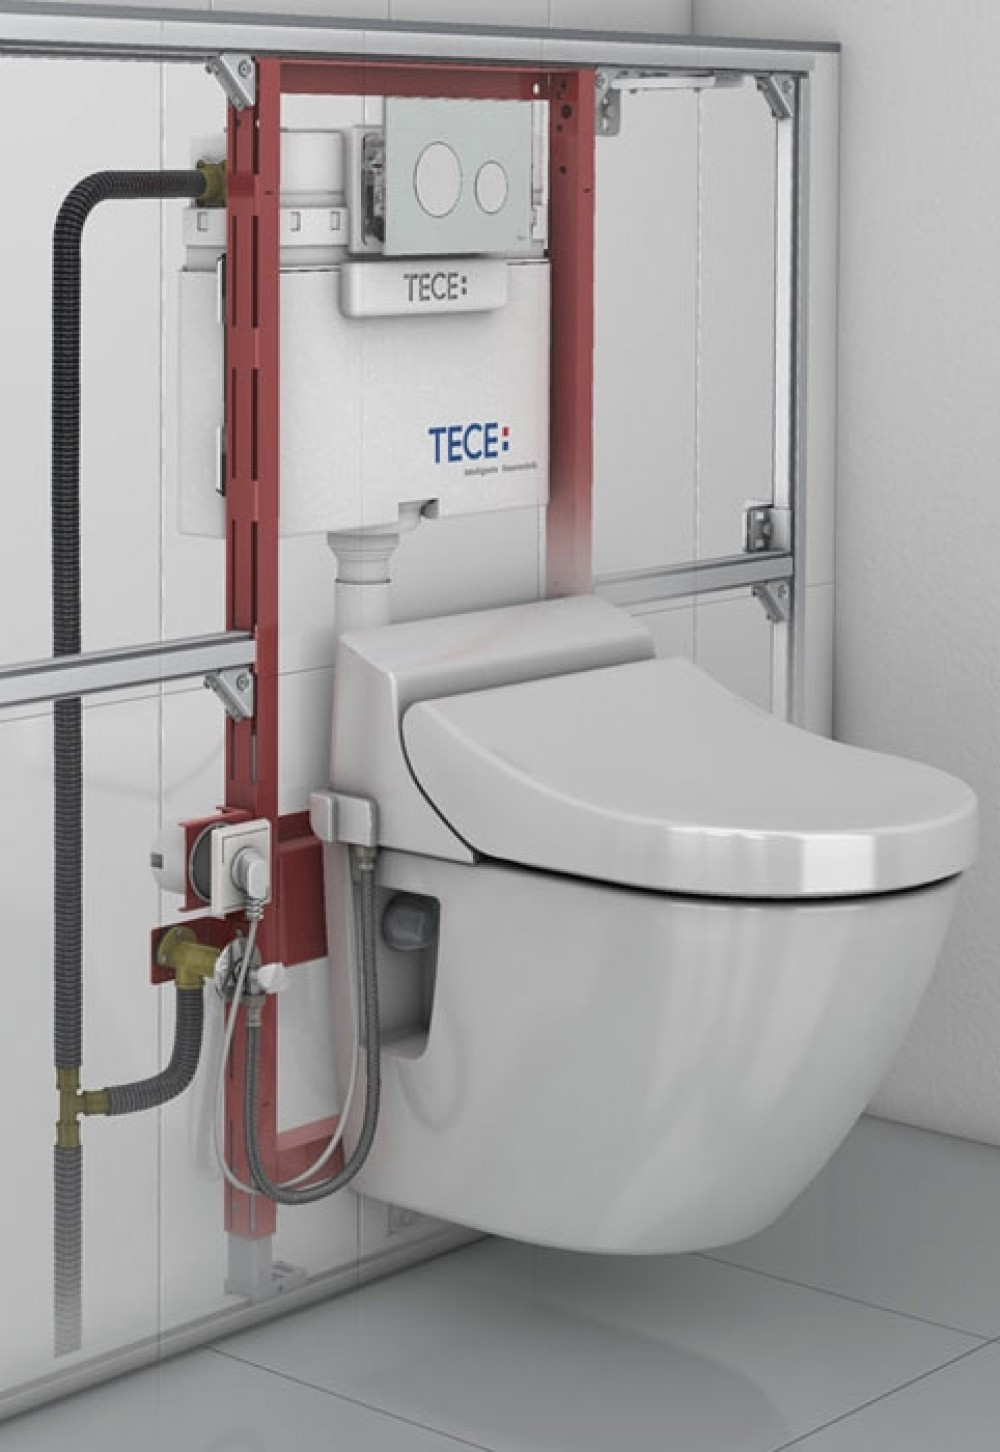 washlet tece installation